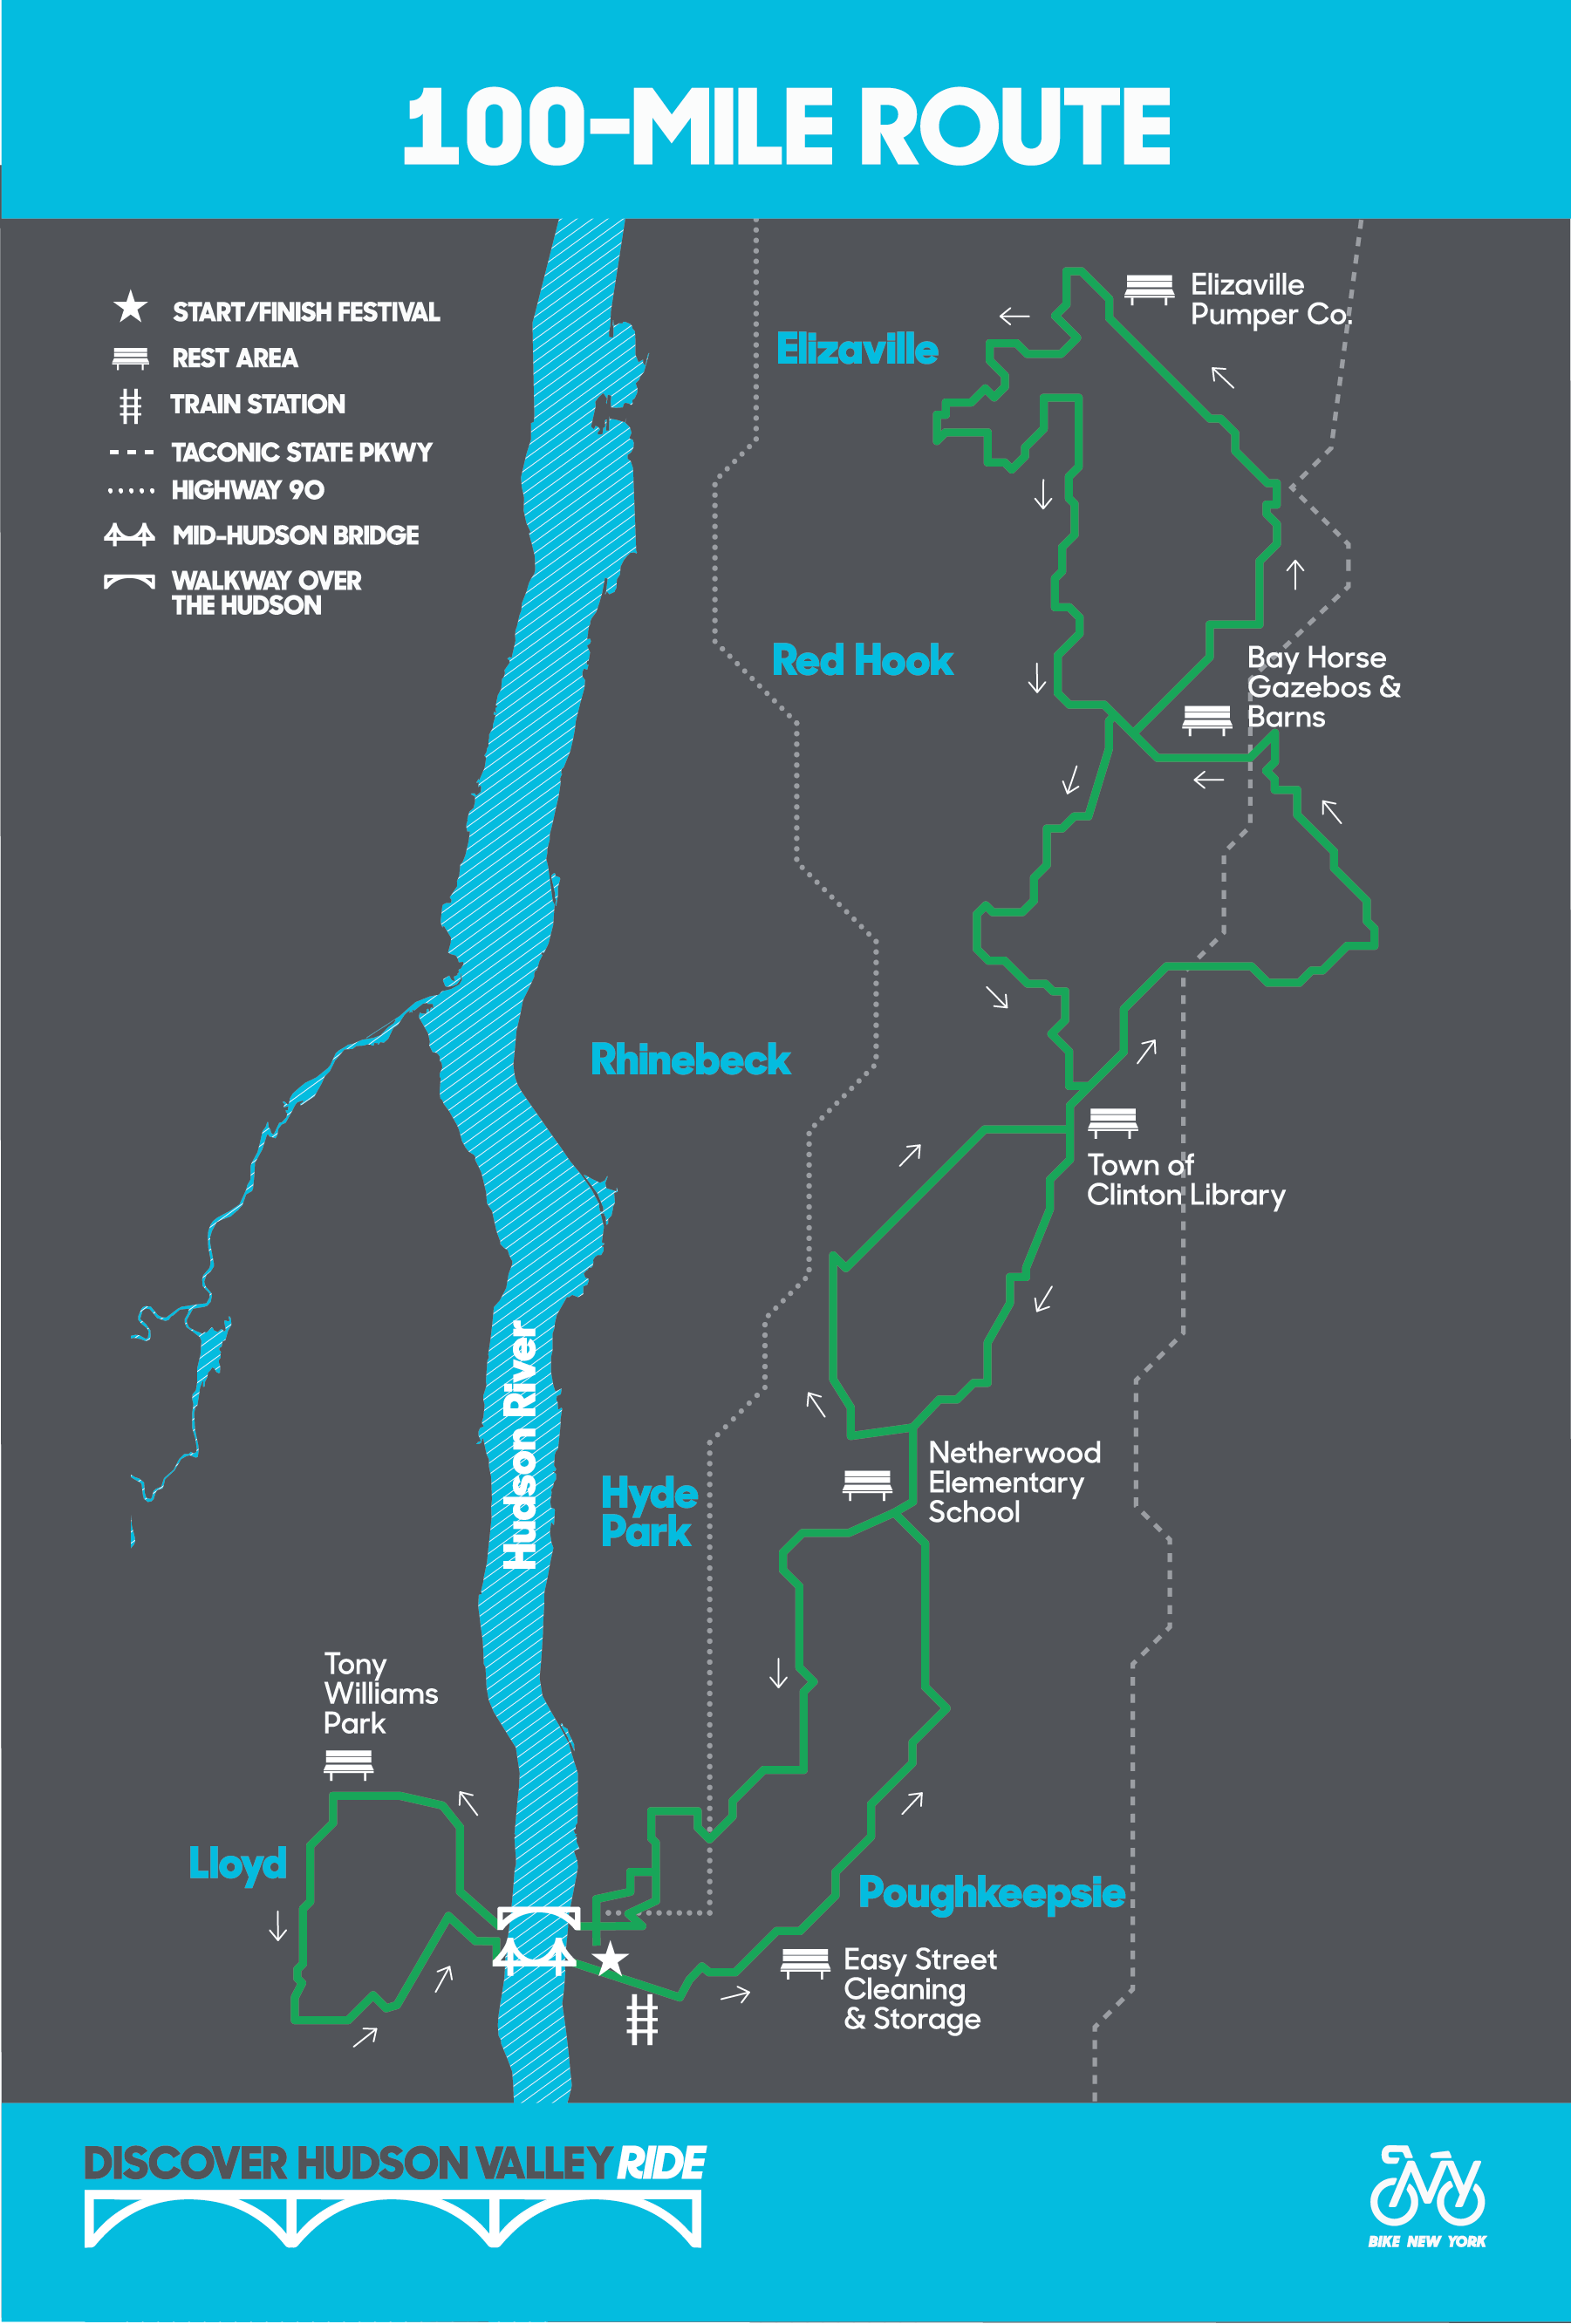 Bike New York Map.Discover Hudson Valley Ride Route Maps Bike New York